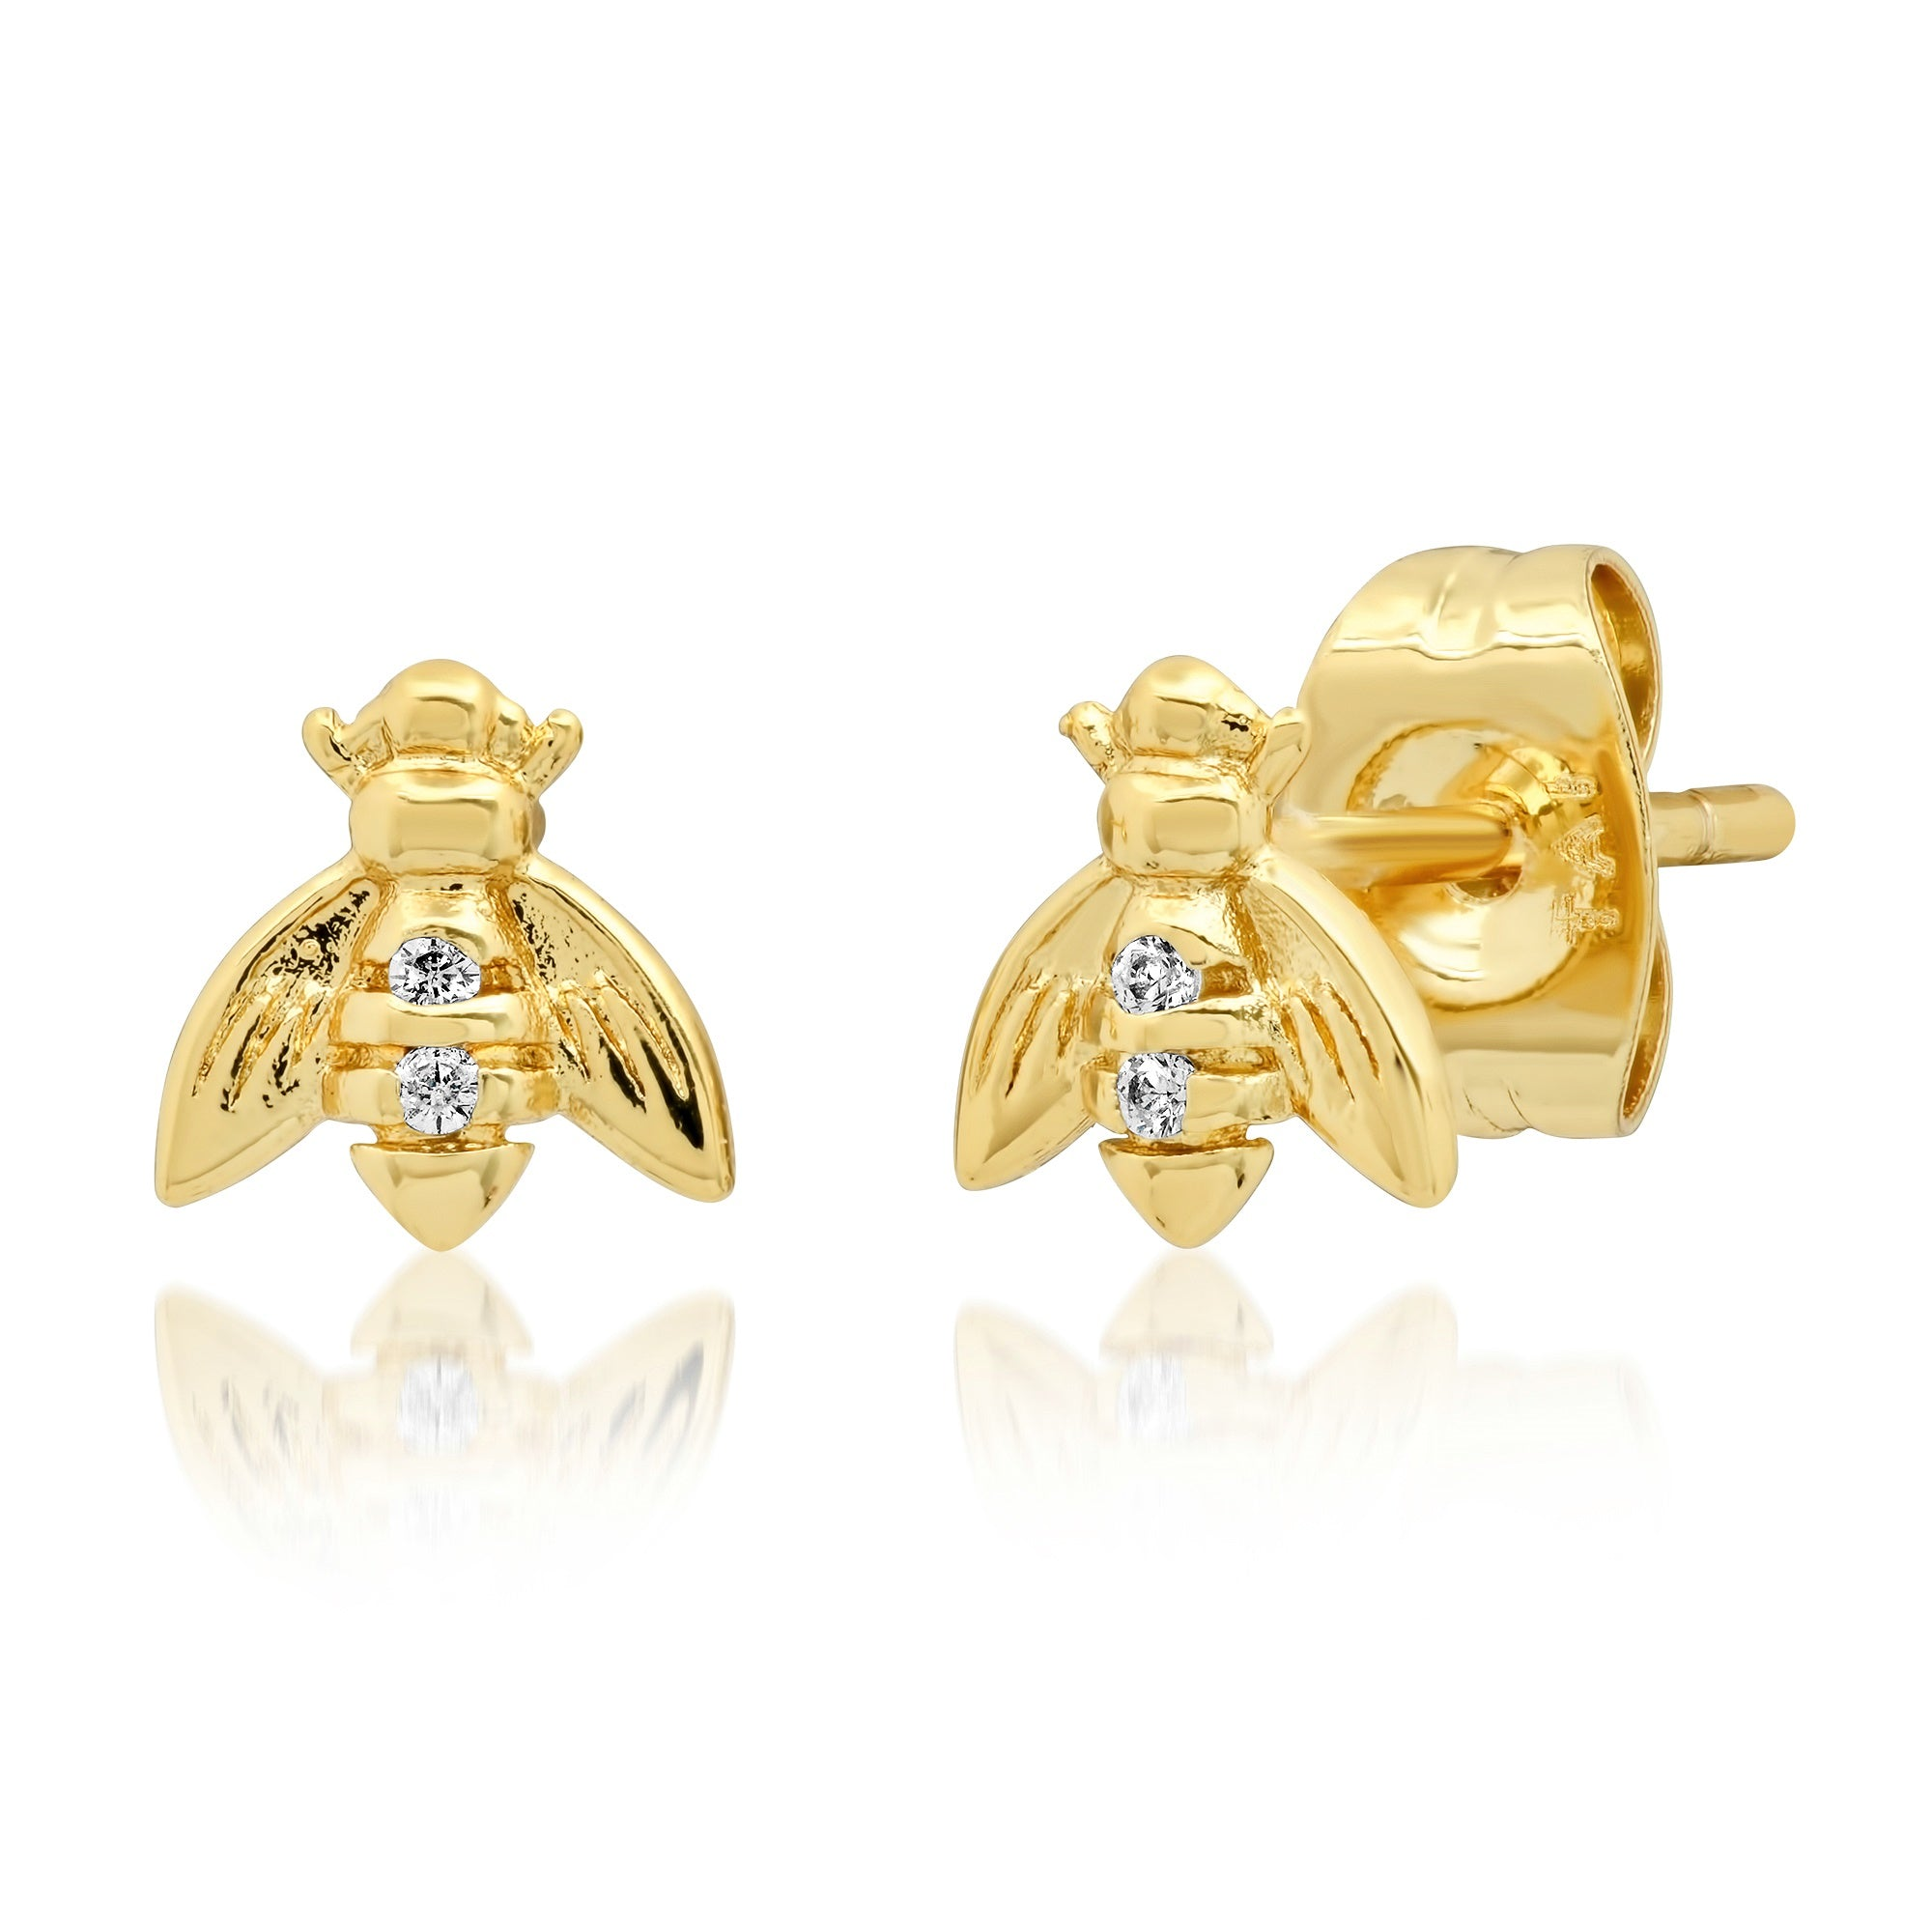 Gold Bee Studs with CZ Accents